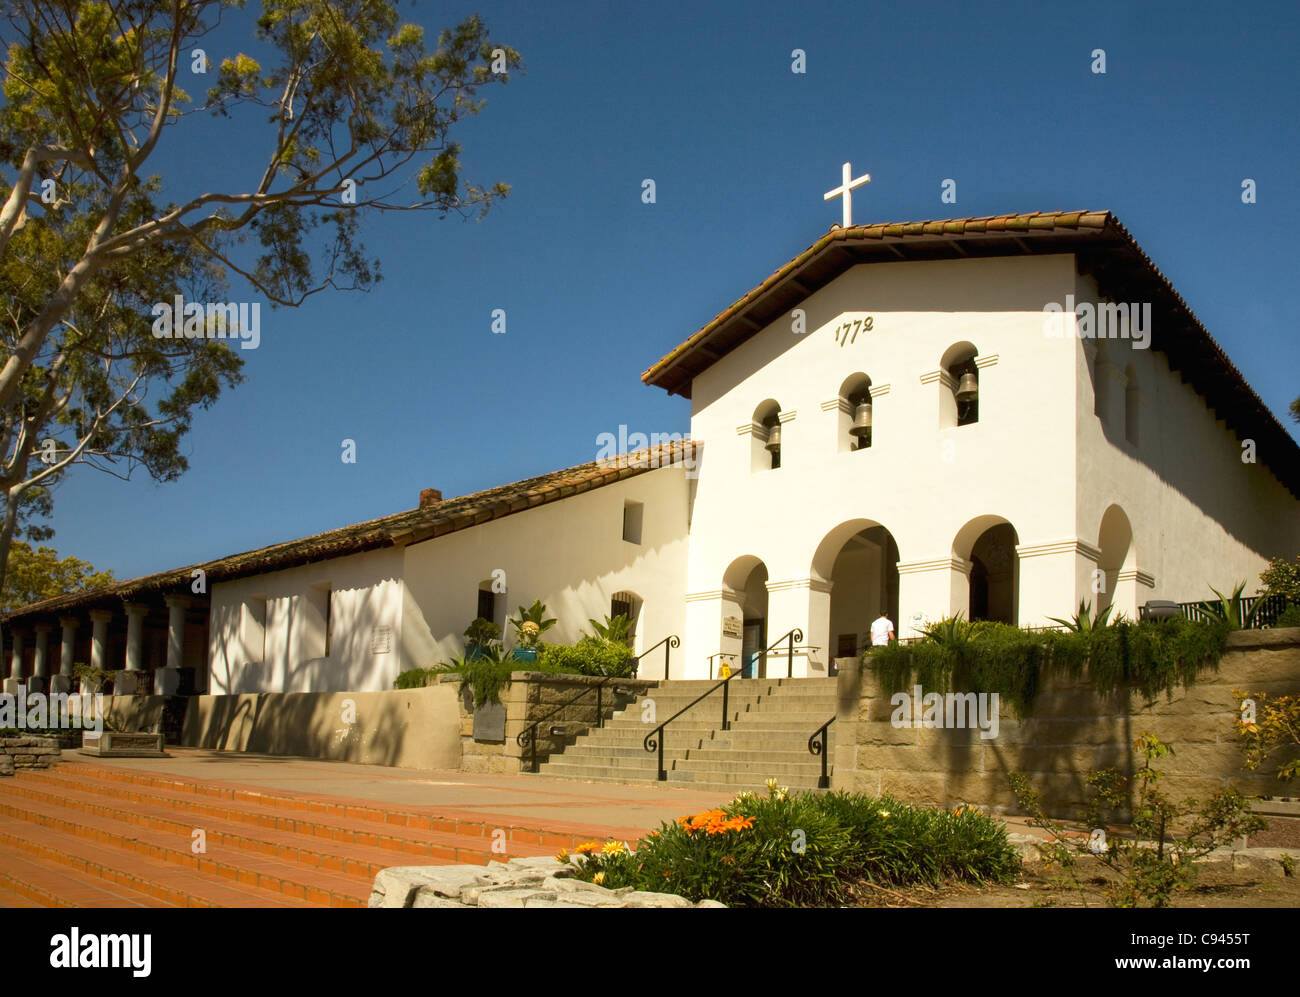 CALIFORNIA - Mission San Luis Obispo de Tolosa in downtown San Luis Obispo. - Stock Image